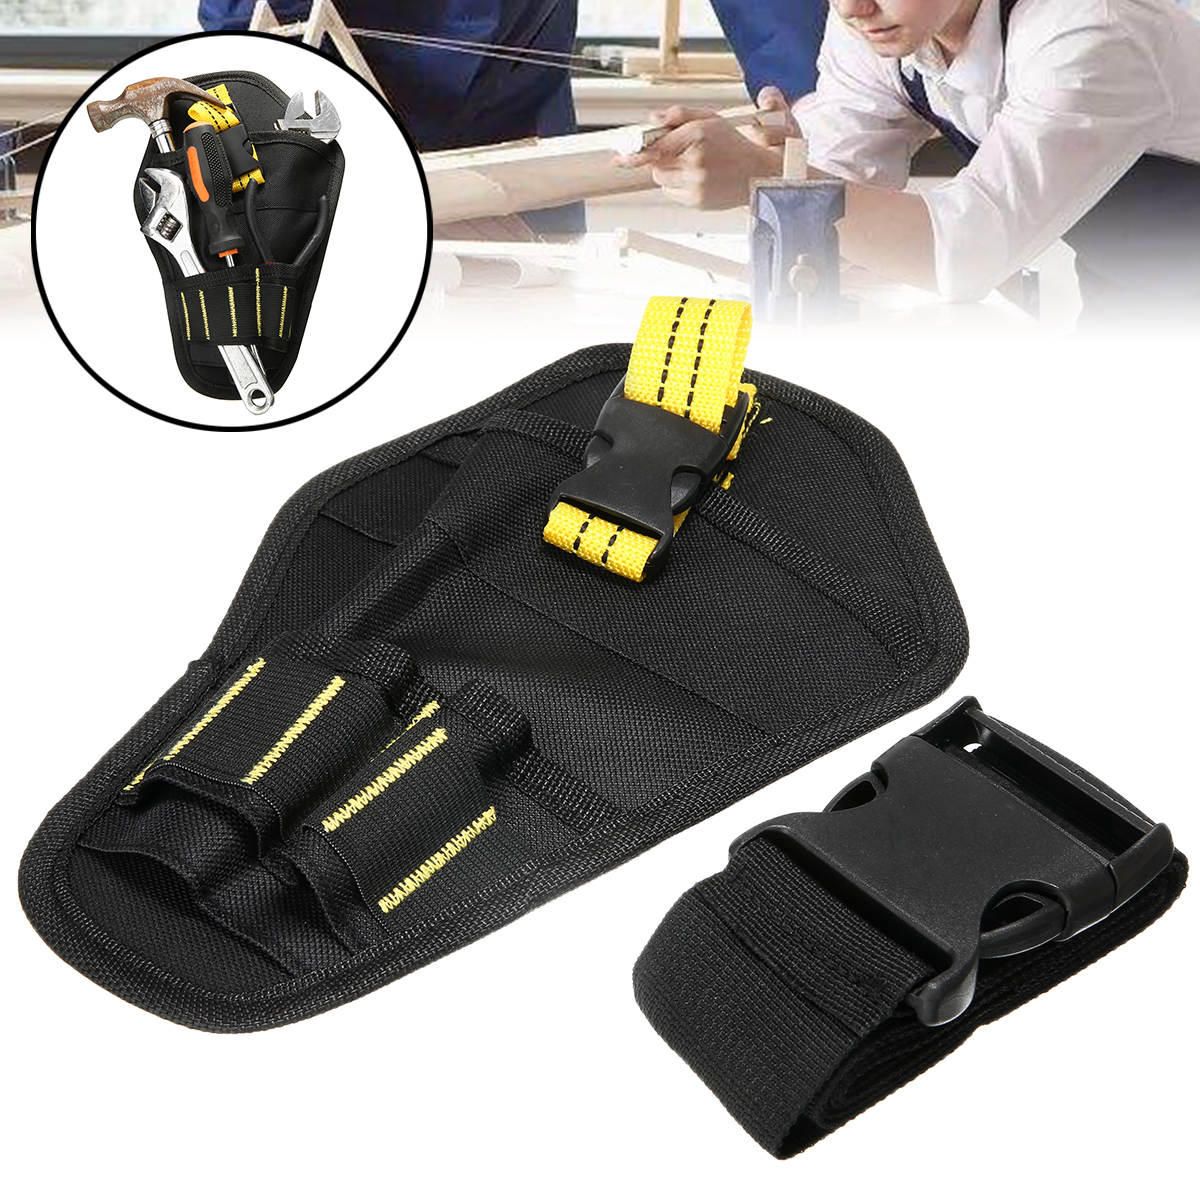 Portable Pouch Bag Electrician Tool Impact Driver Drill Holster Electric Cordless Drill Holder Waist Tool Bag Without Waist Belt